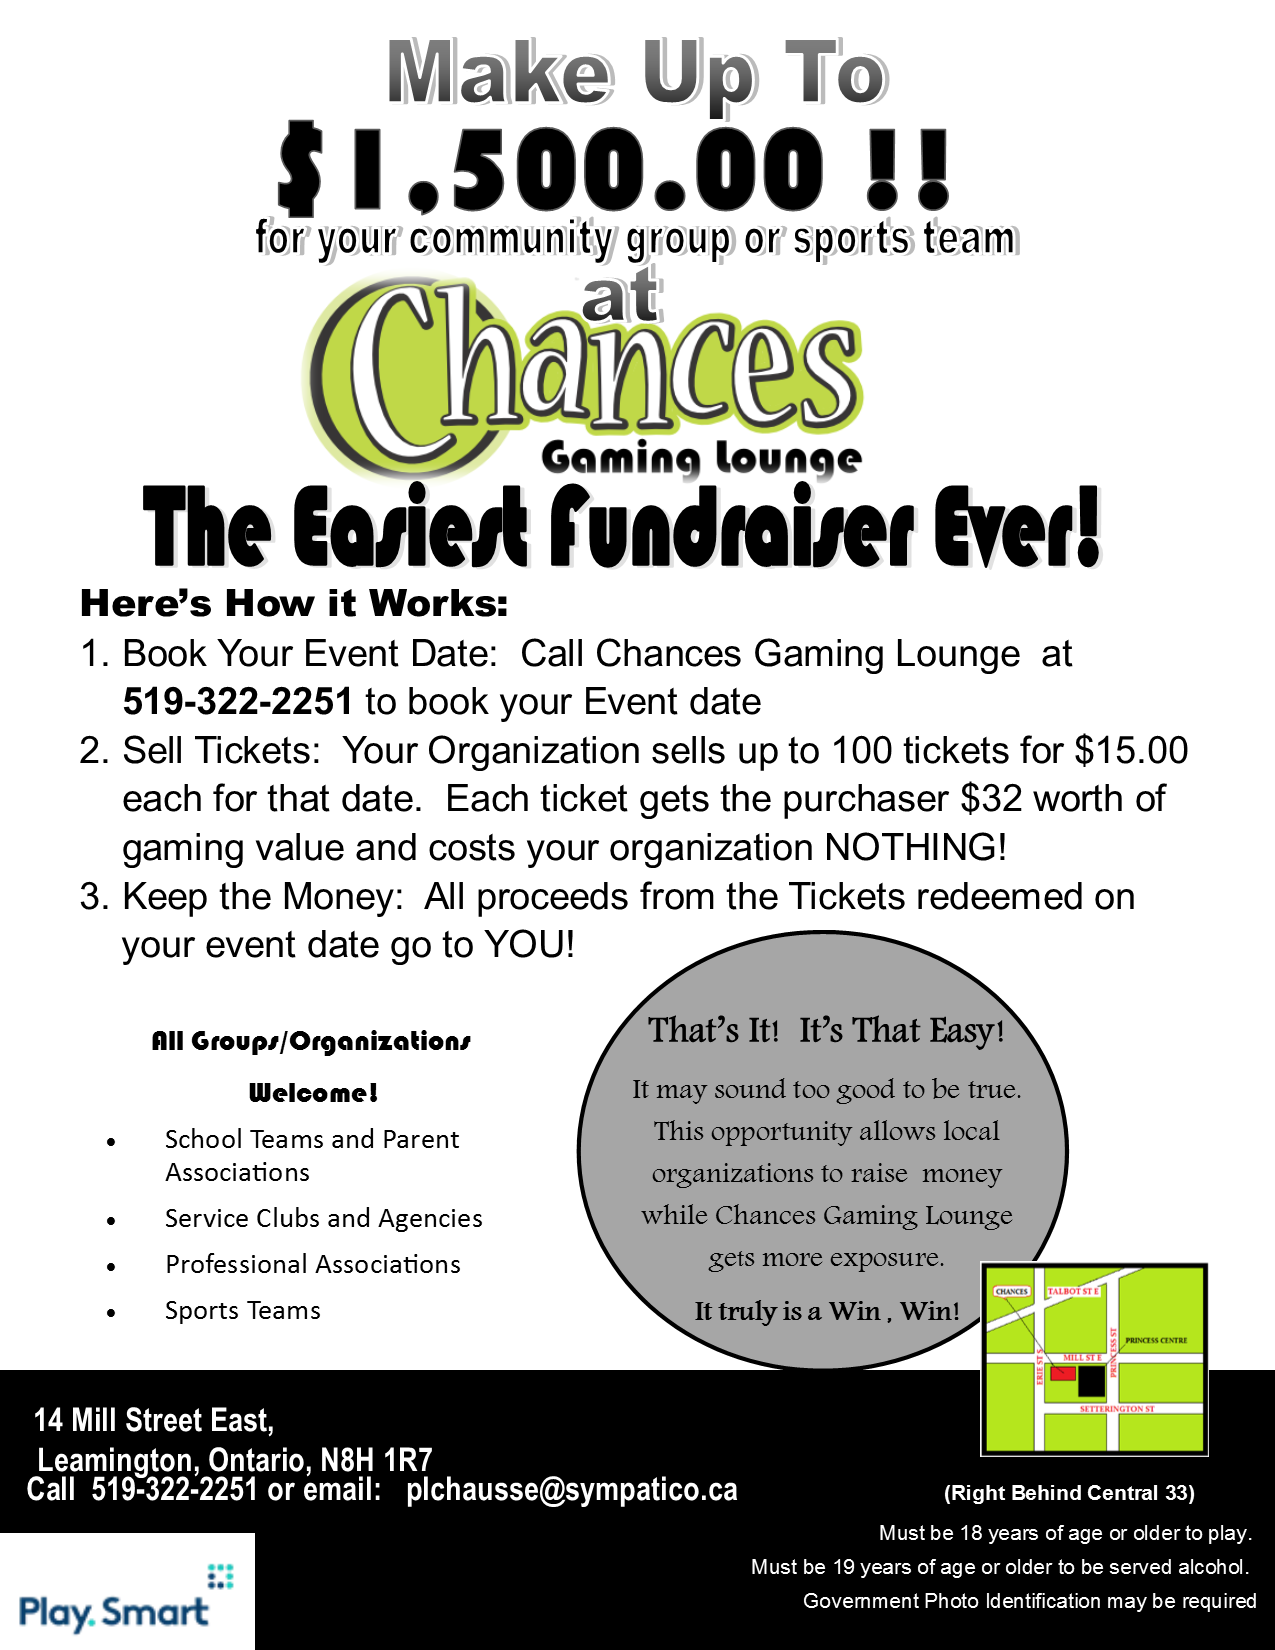 This image contains some details about having a fundraiser. To find out more information please call us at (519)322-2251